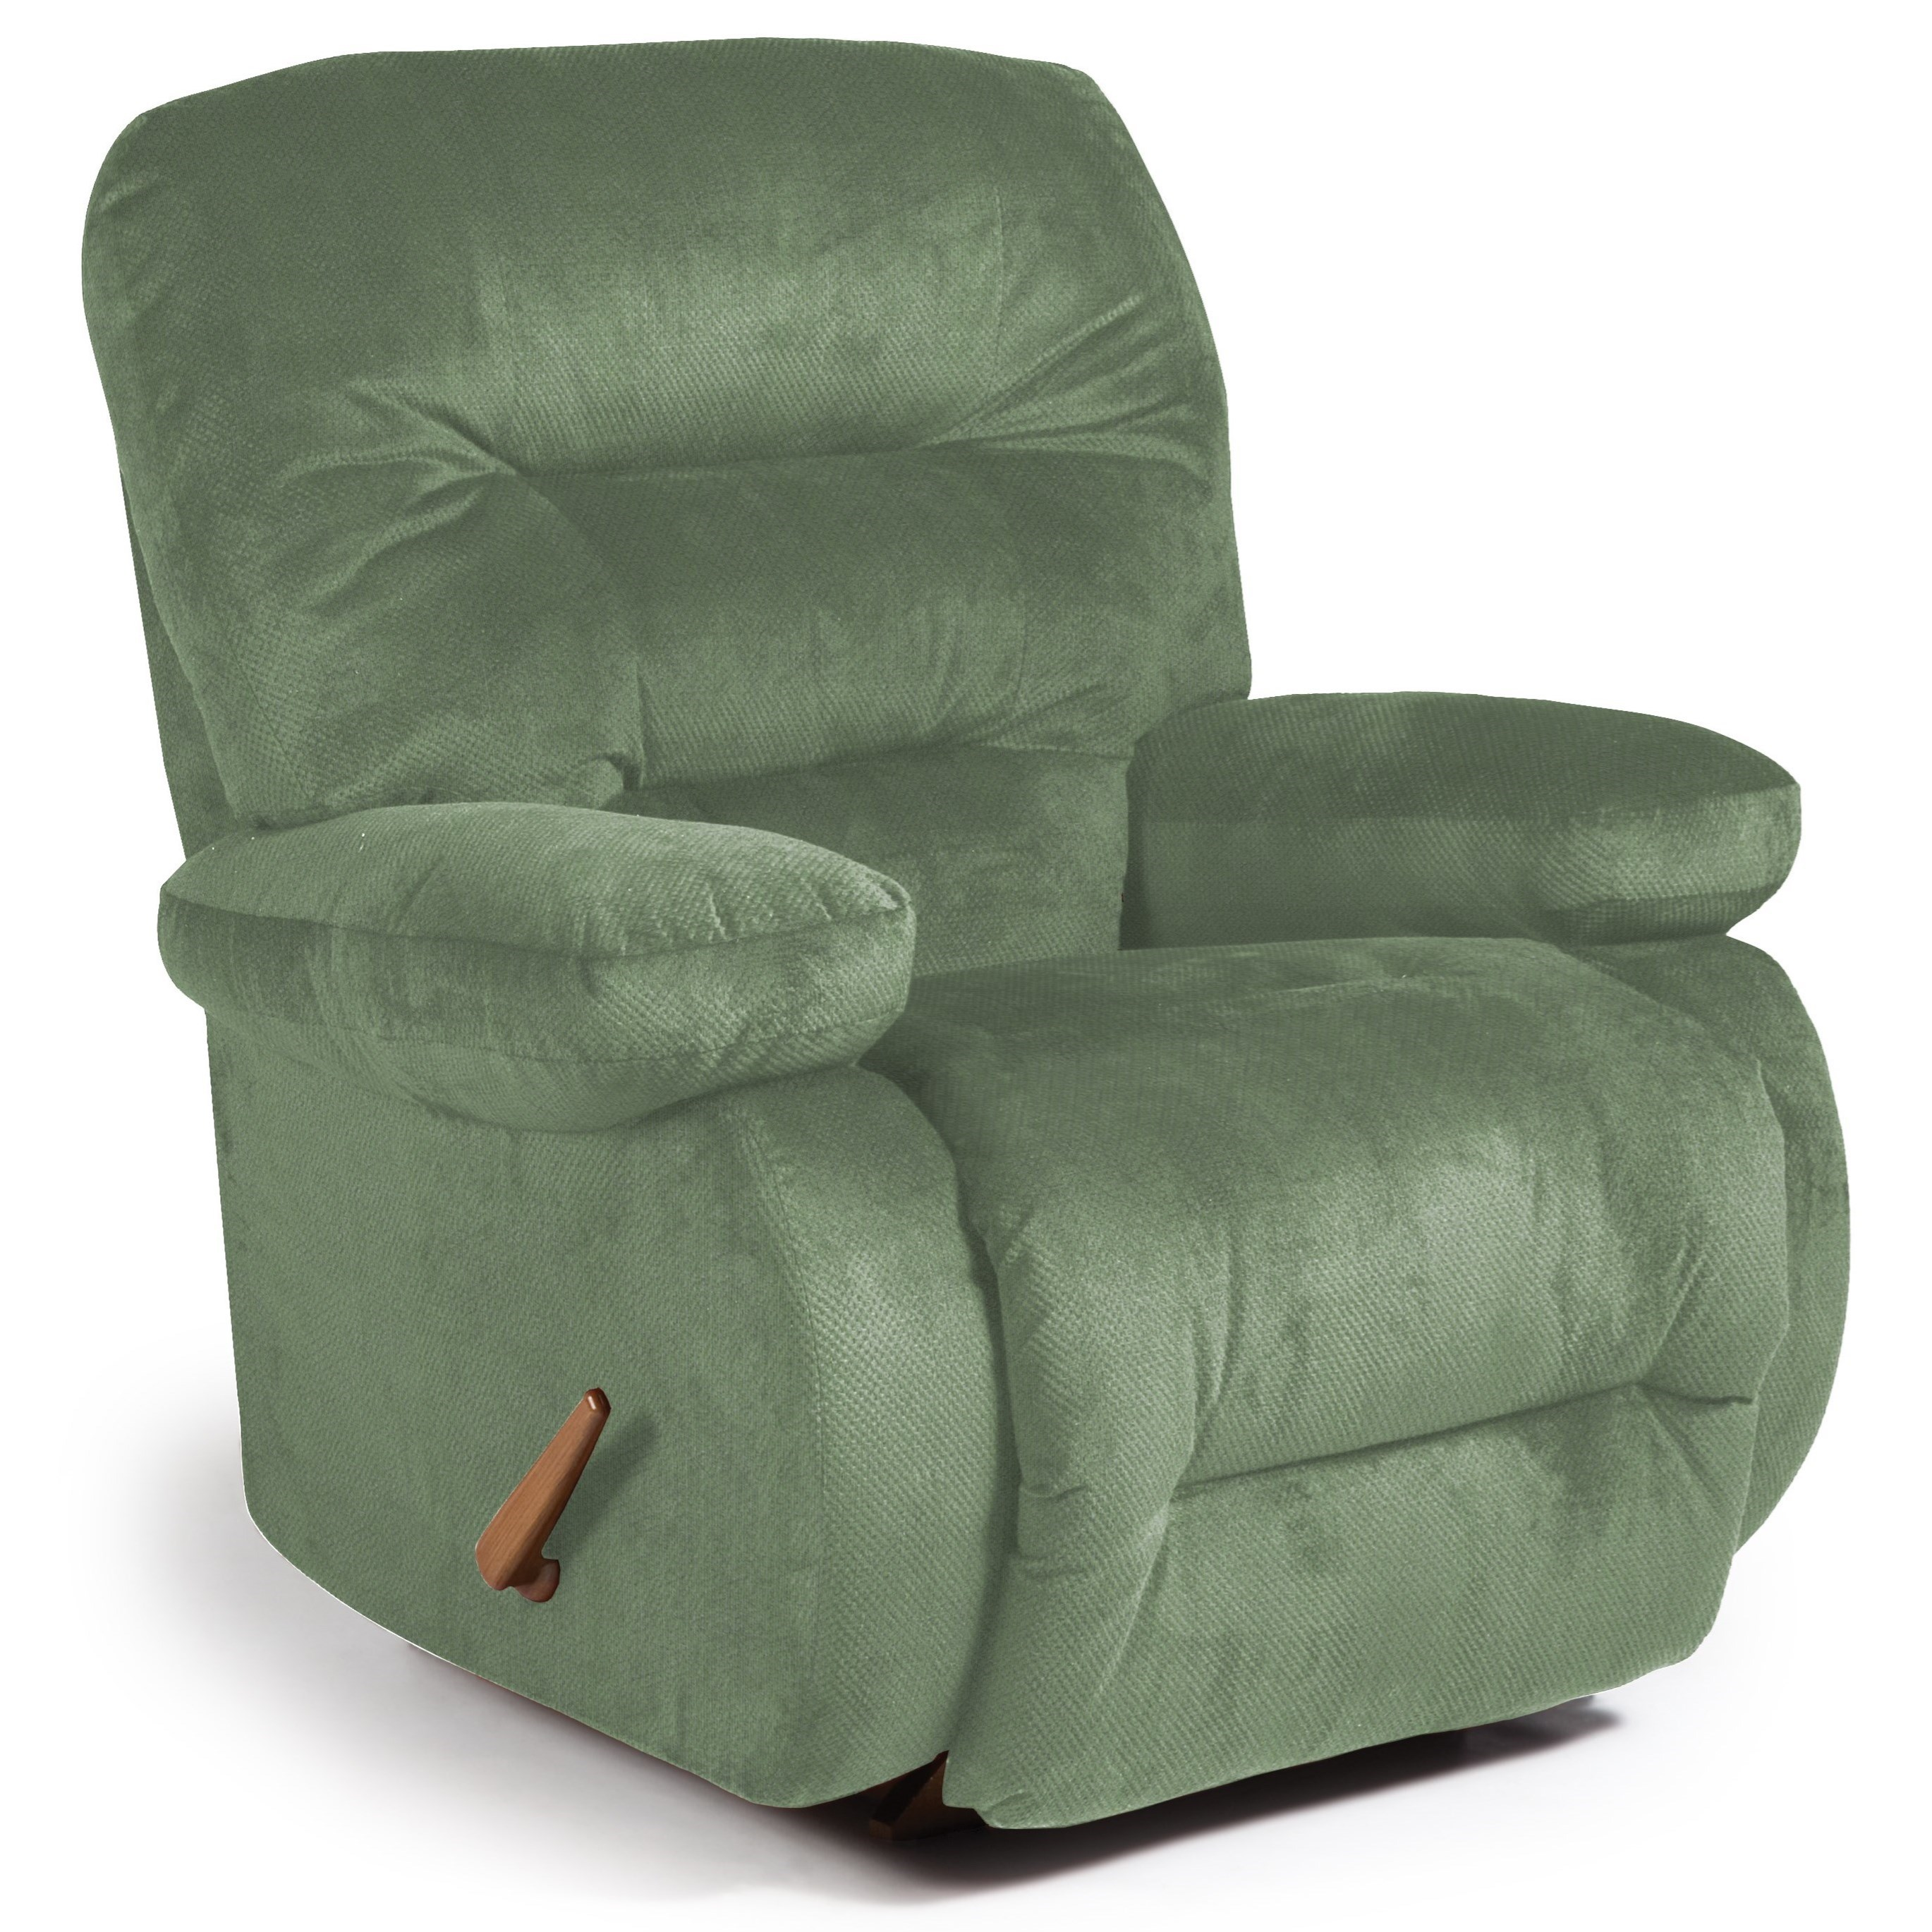 Medium Recliners Maddox Rocker Recliner by Best Home Furnishings at Fisher Home Furnishings